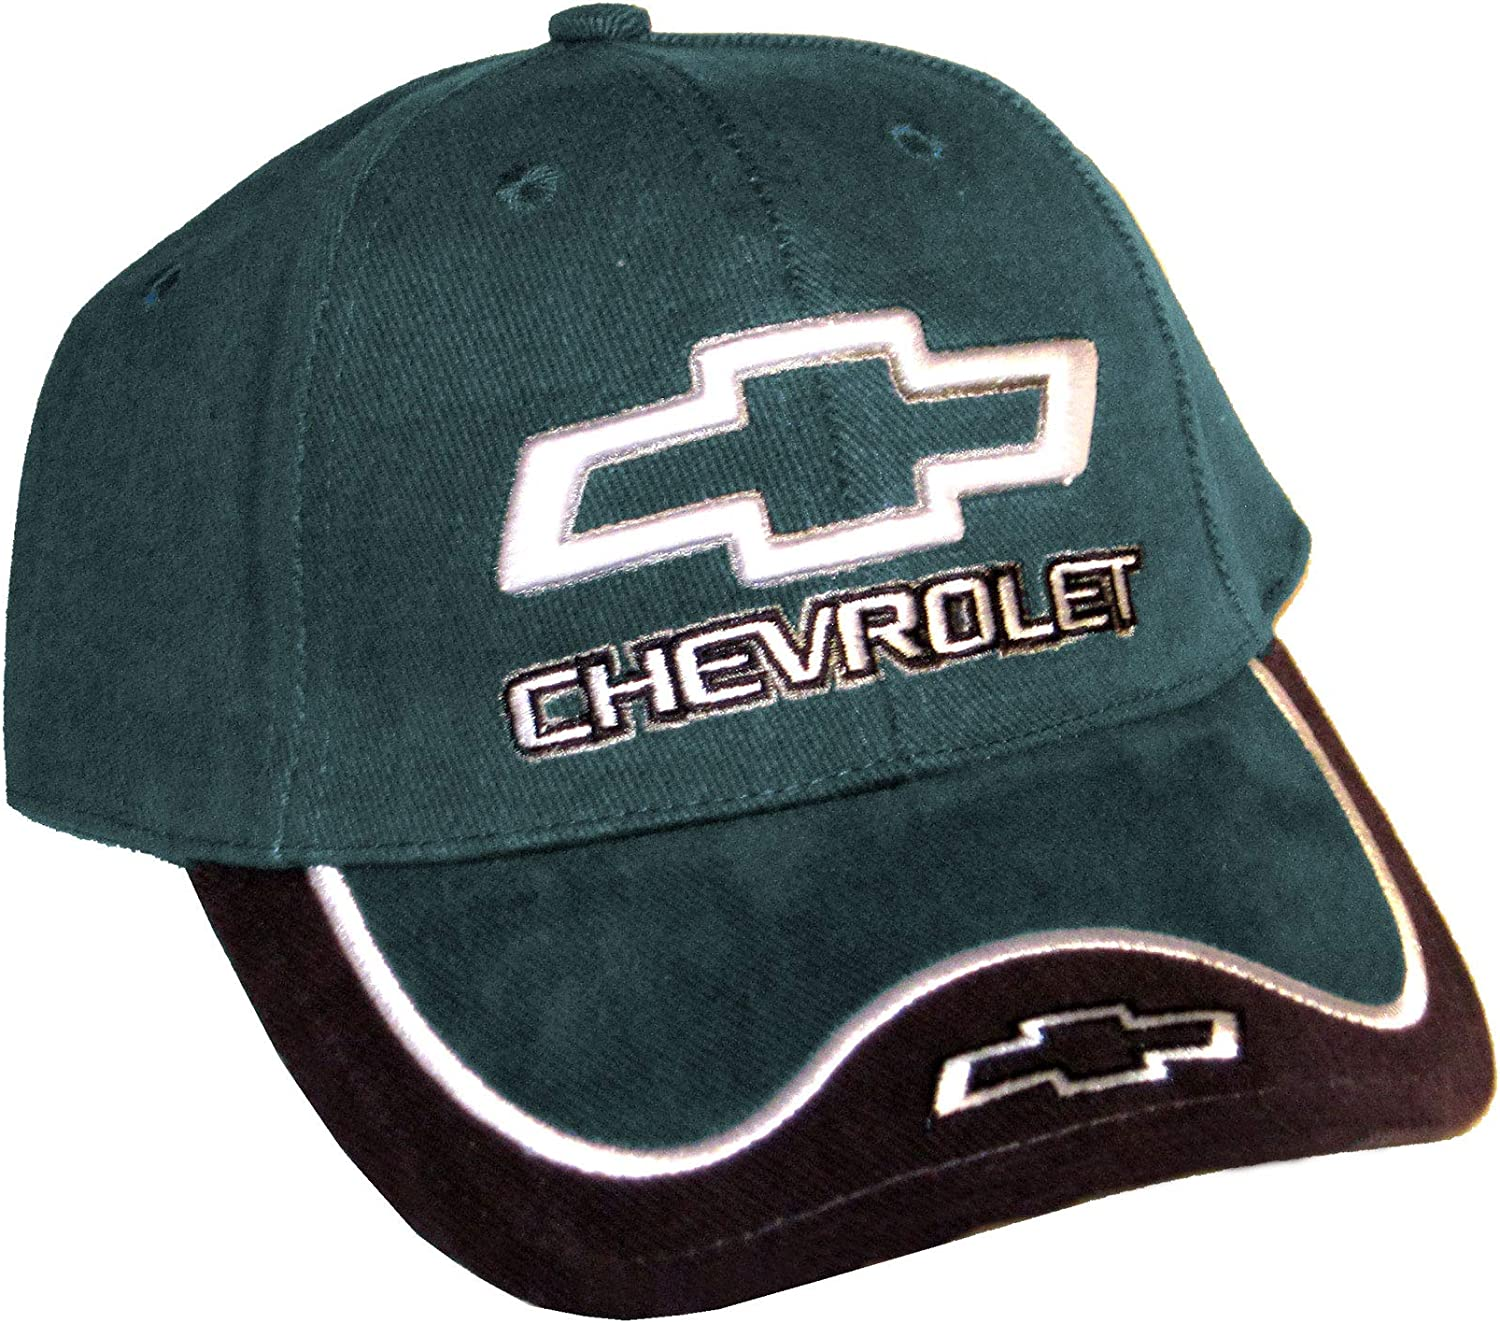 Bundle with Driving Style Decal Gregs Automotive Buick Logo Hat Cap Black